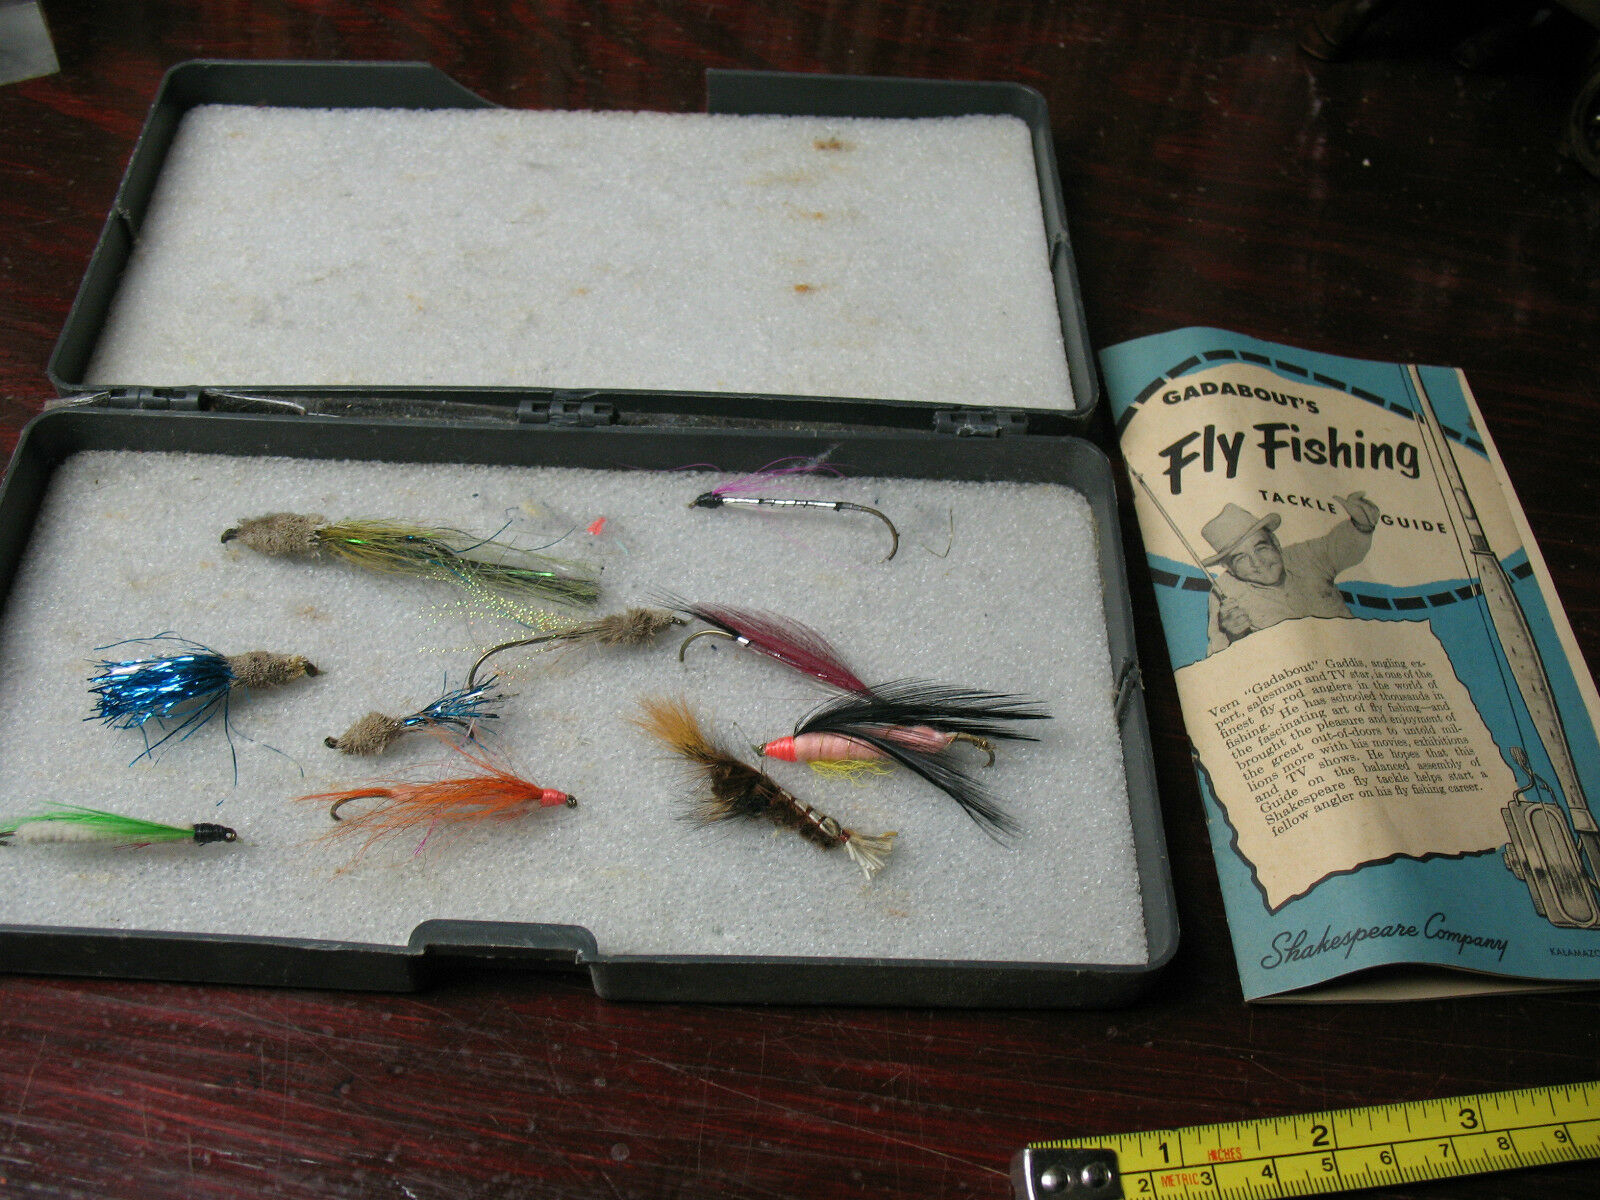 GADABOUT'S FLY   FISHING GUIDE & VINTAGE   FISHING  FLIES  big sale